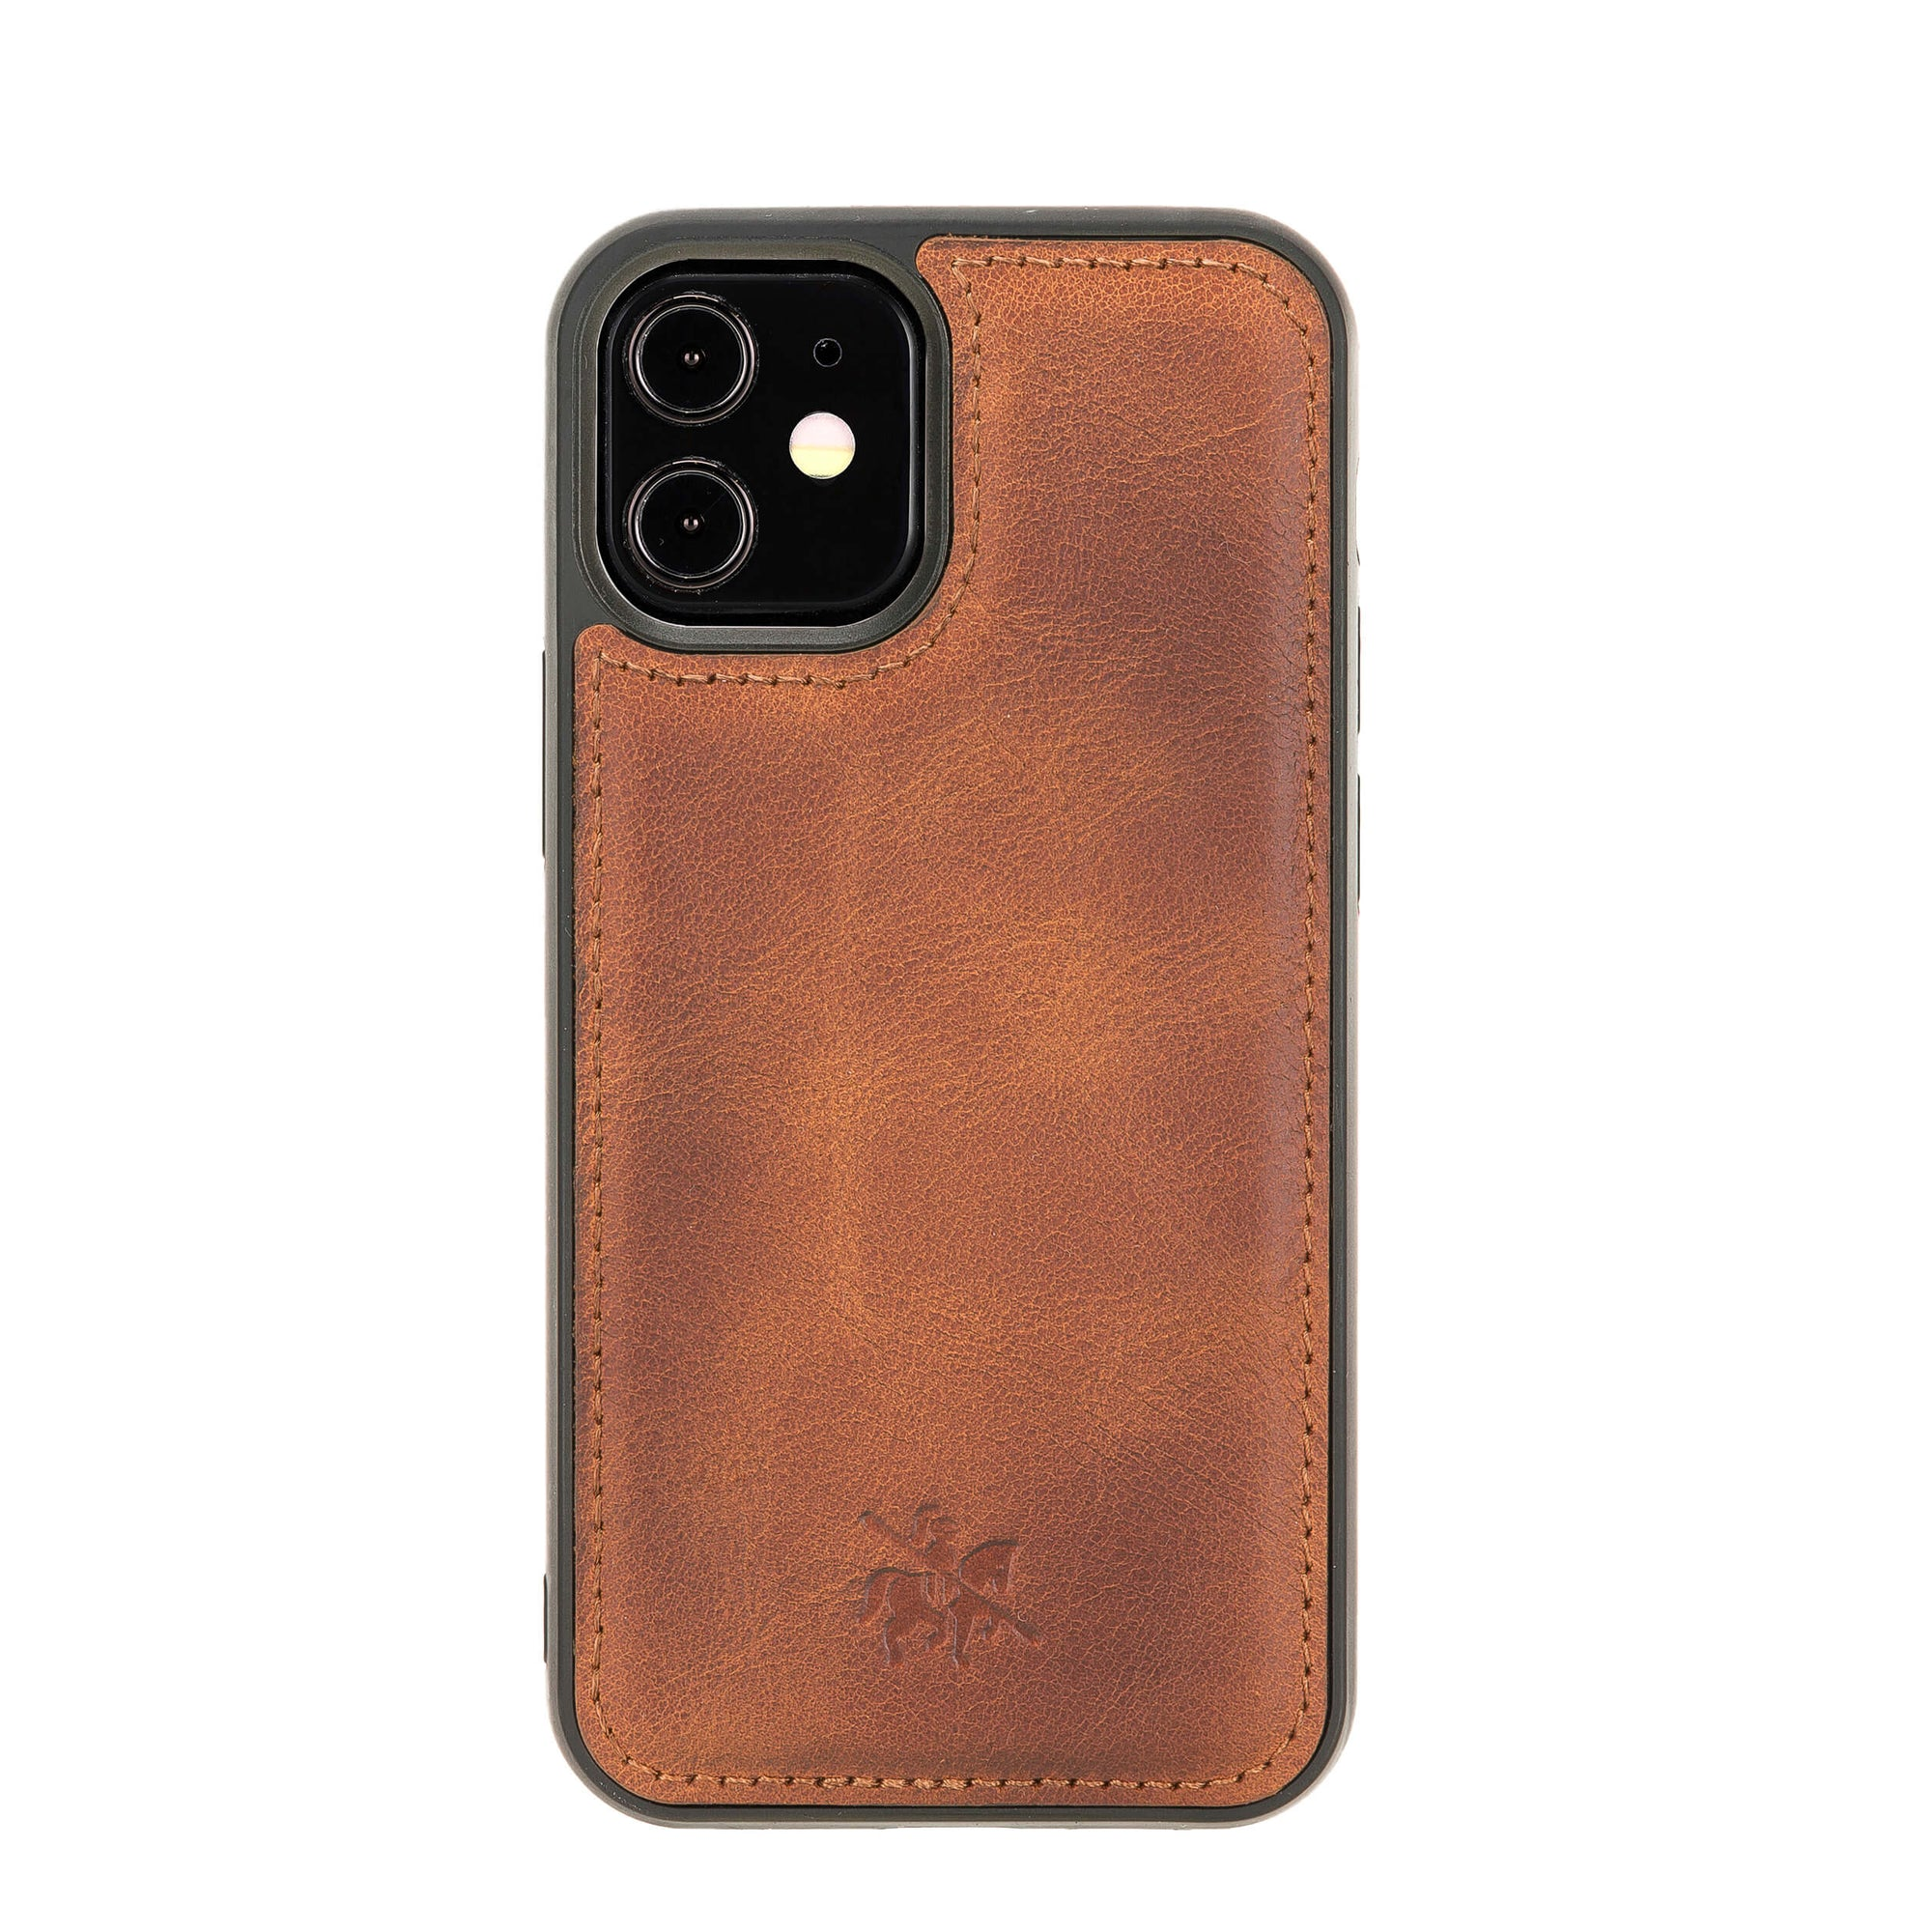 Lucca Snap On Leather Case for iPhone 12 Mini